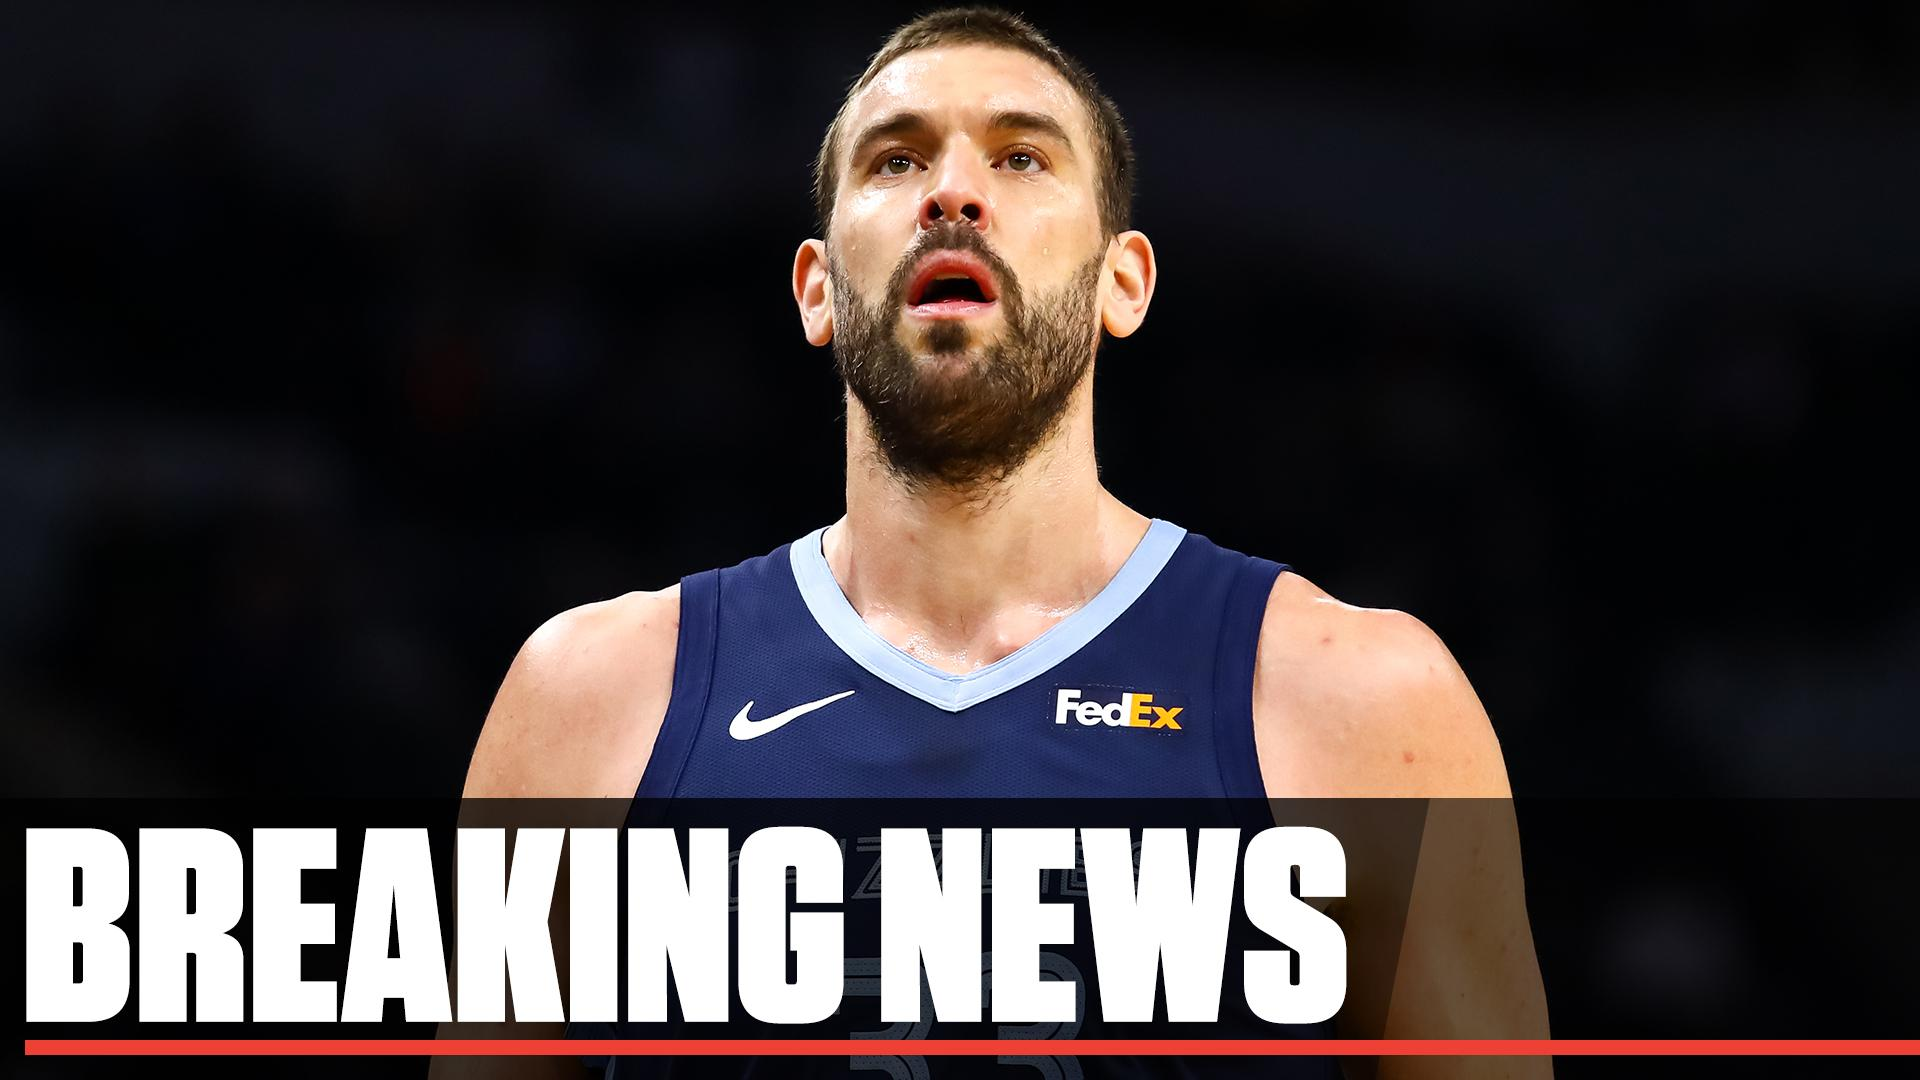 Breaking: The Grizzlies are finalizing a trade to send Marc Gasol to the Raptors, league sources tell @wojespn. https://t.co/n6b71uR1u0